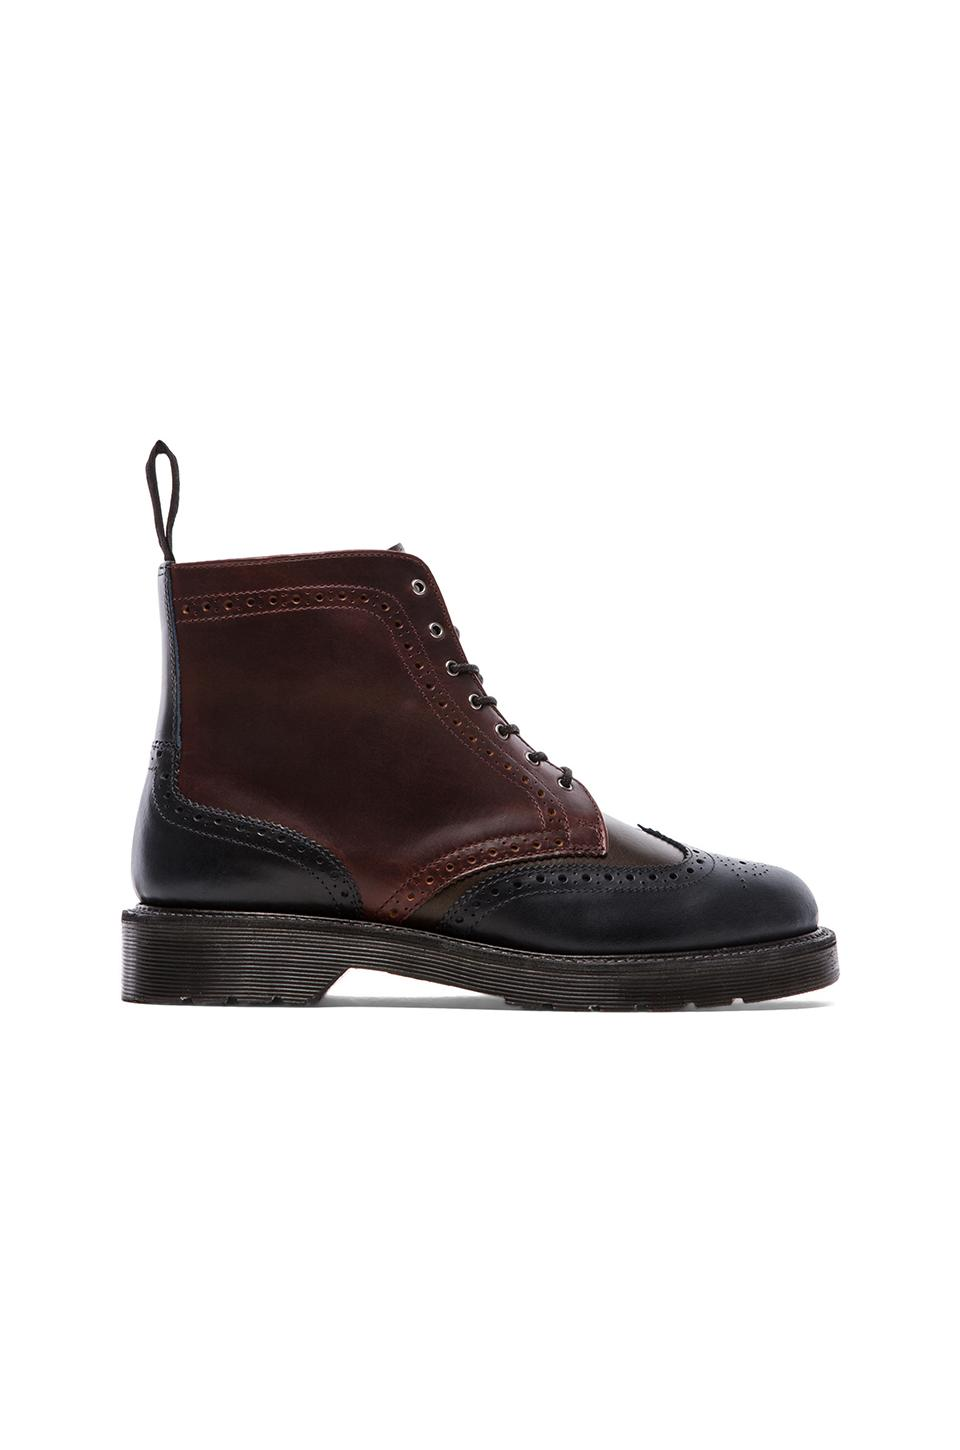 Dr. Martens Bentley Brouge Boot in Navy & Green & Charro Oxblood & Classic